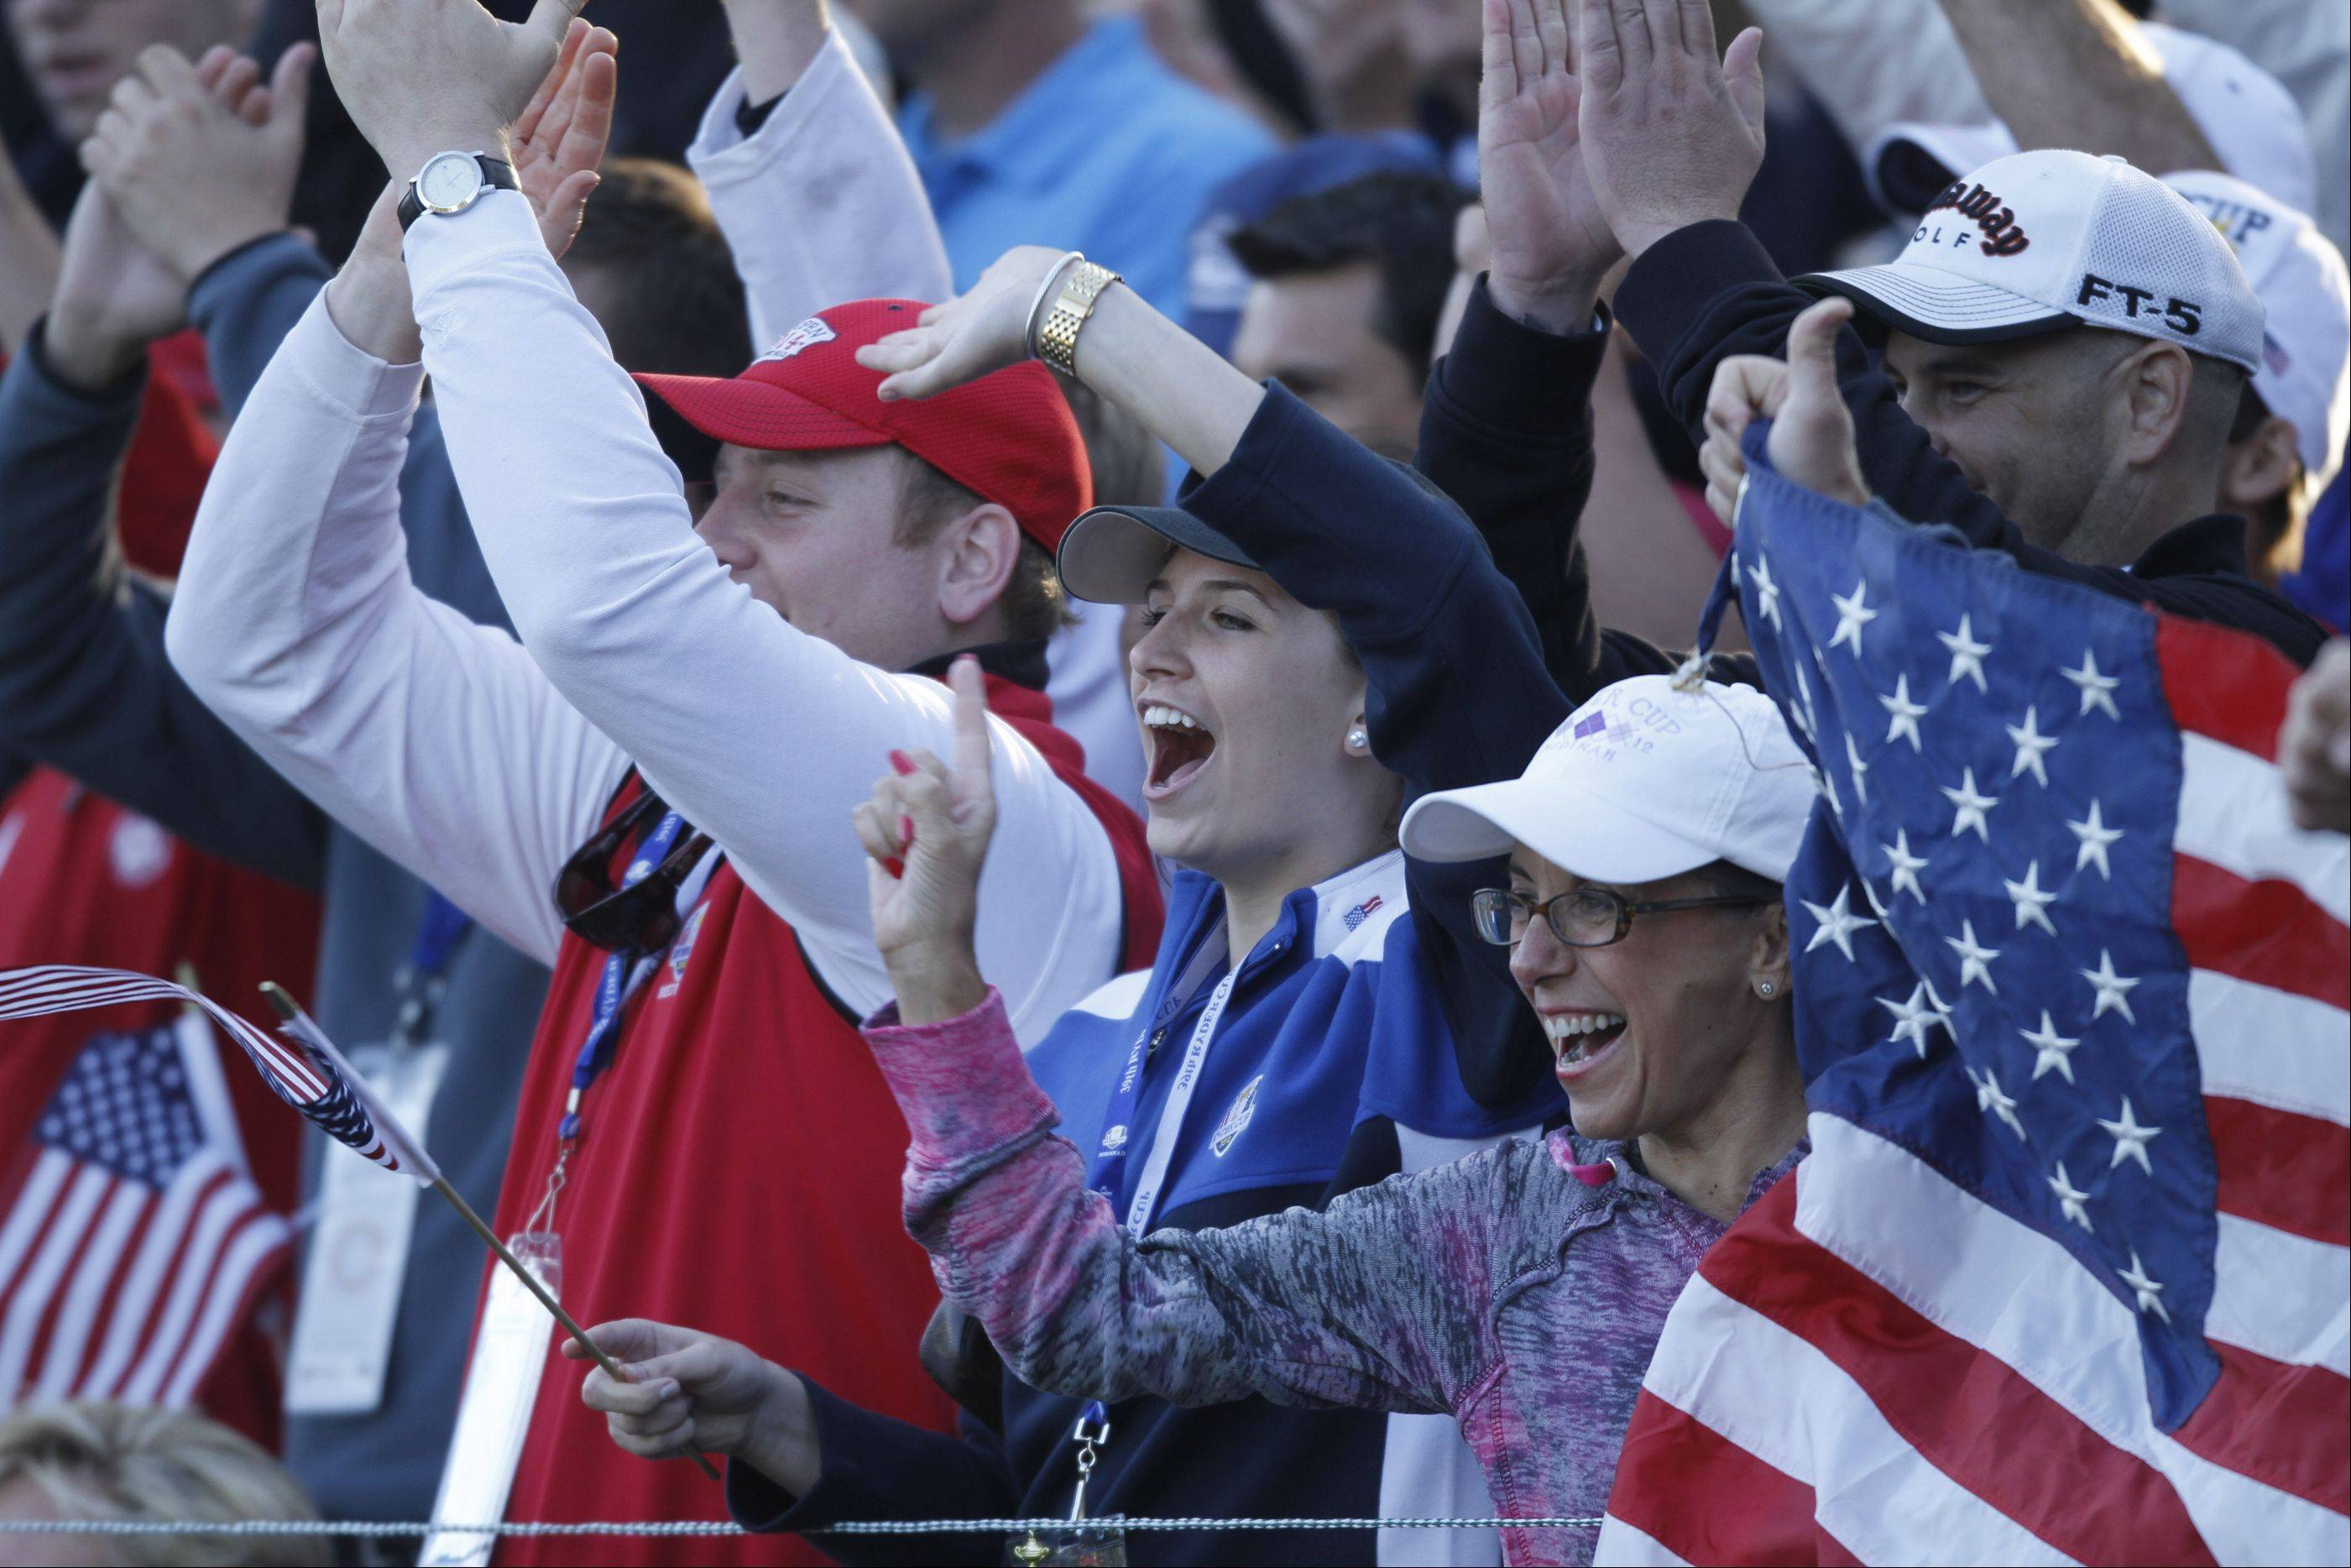 Fans cheer on the US team as Phil Mickelson and Keegan Bradley approach the 17th green Friday afternoon at the 2012 Ryder Cup at Medinah Country Club.